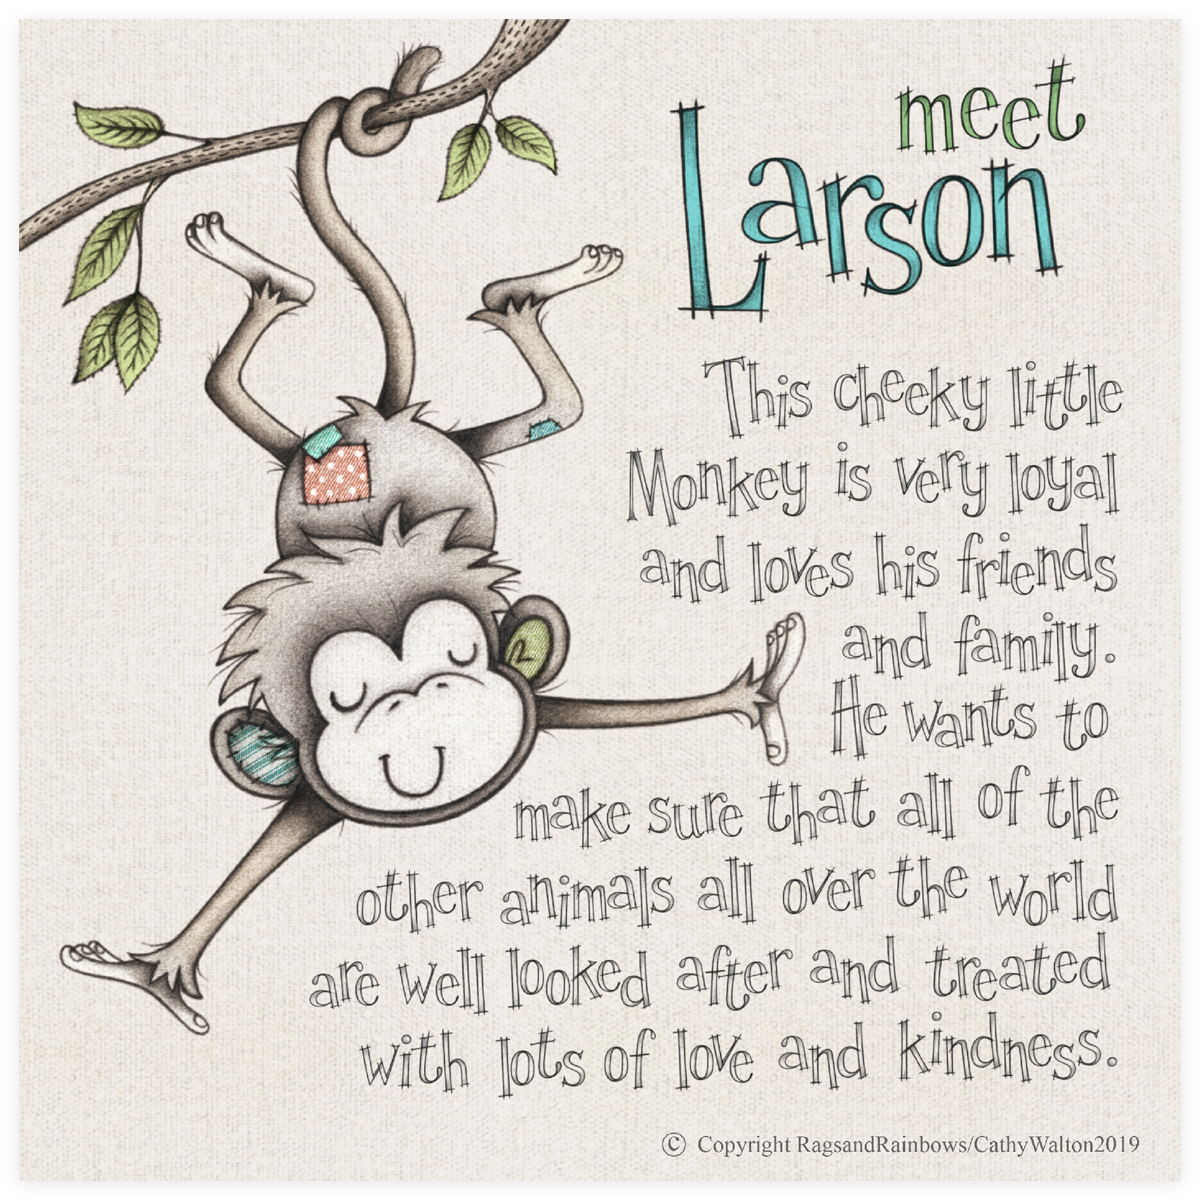 Larson the Monkey